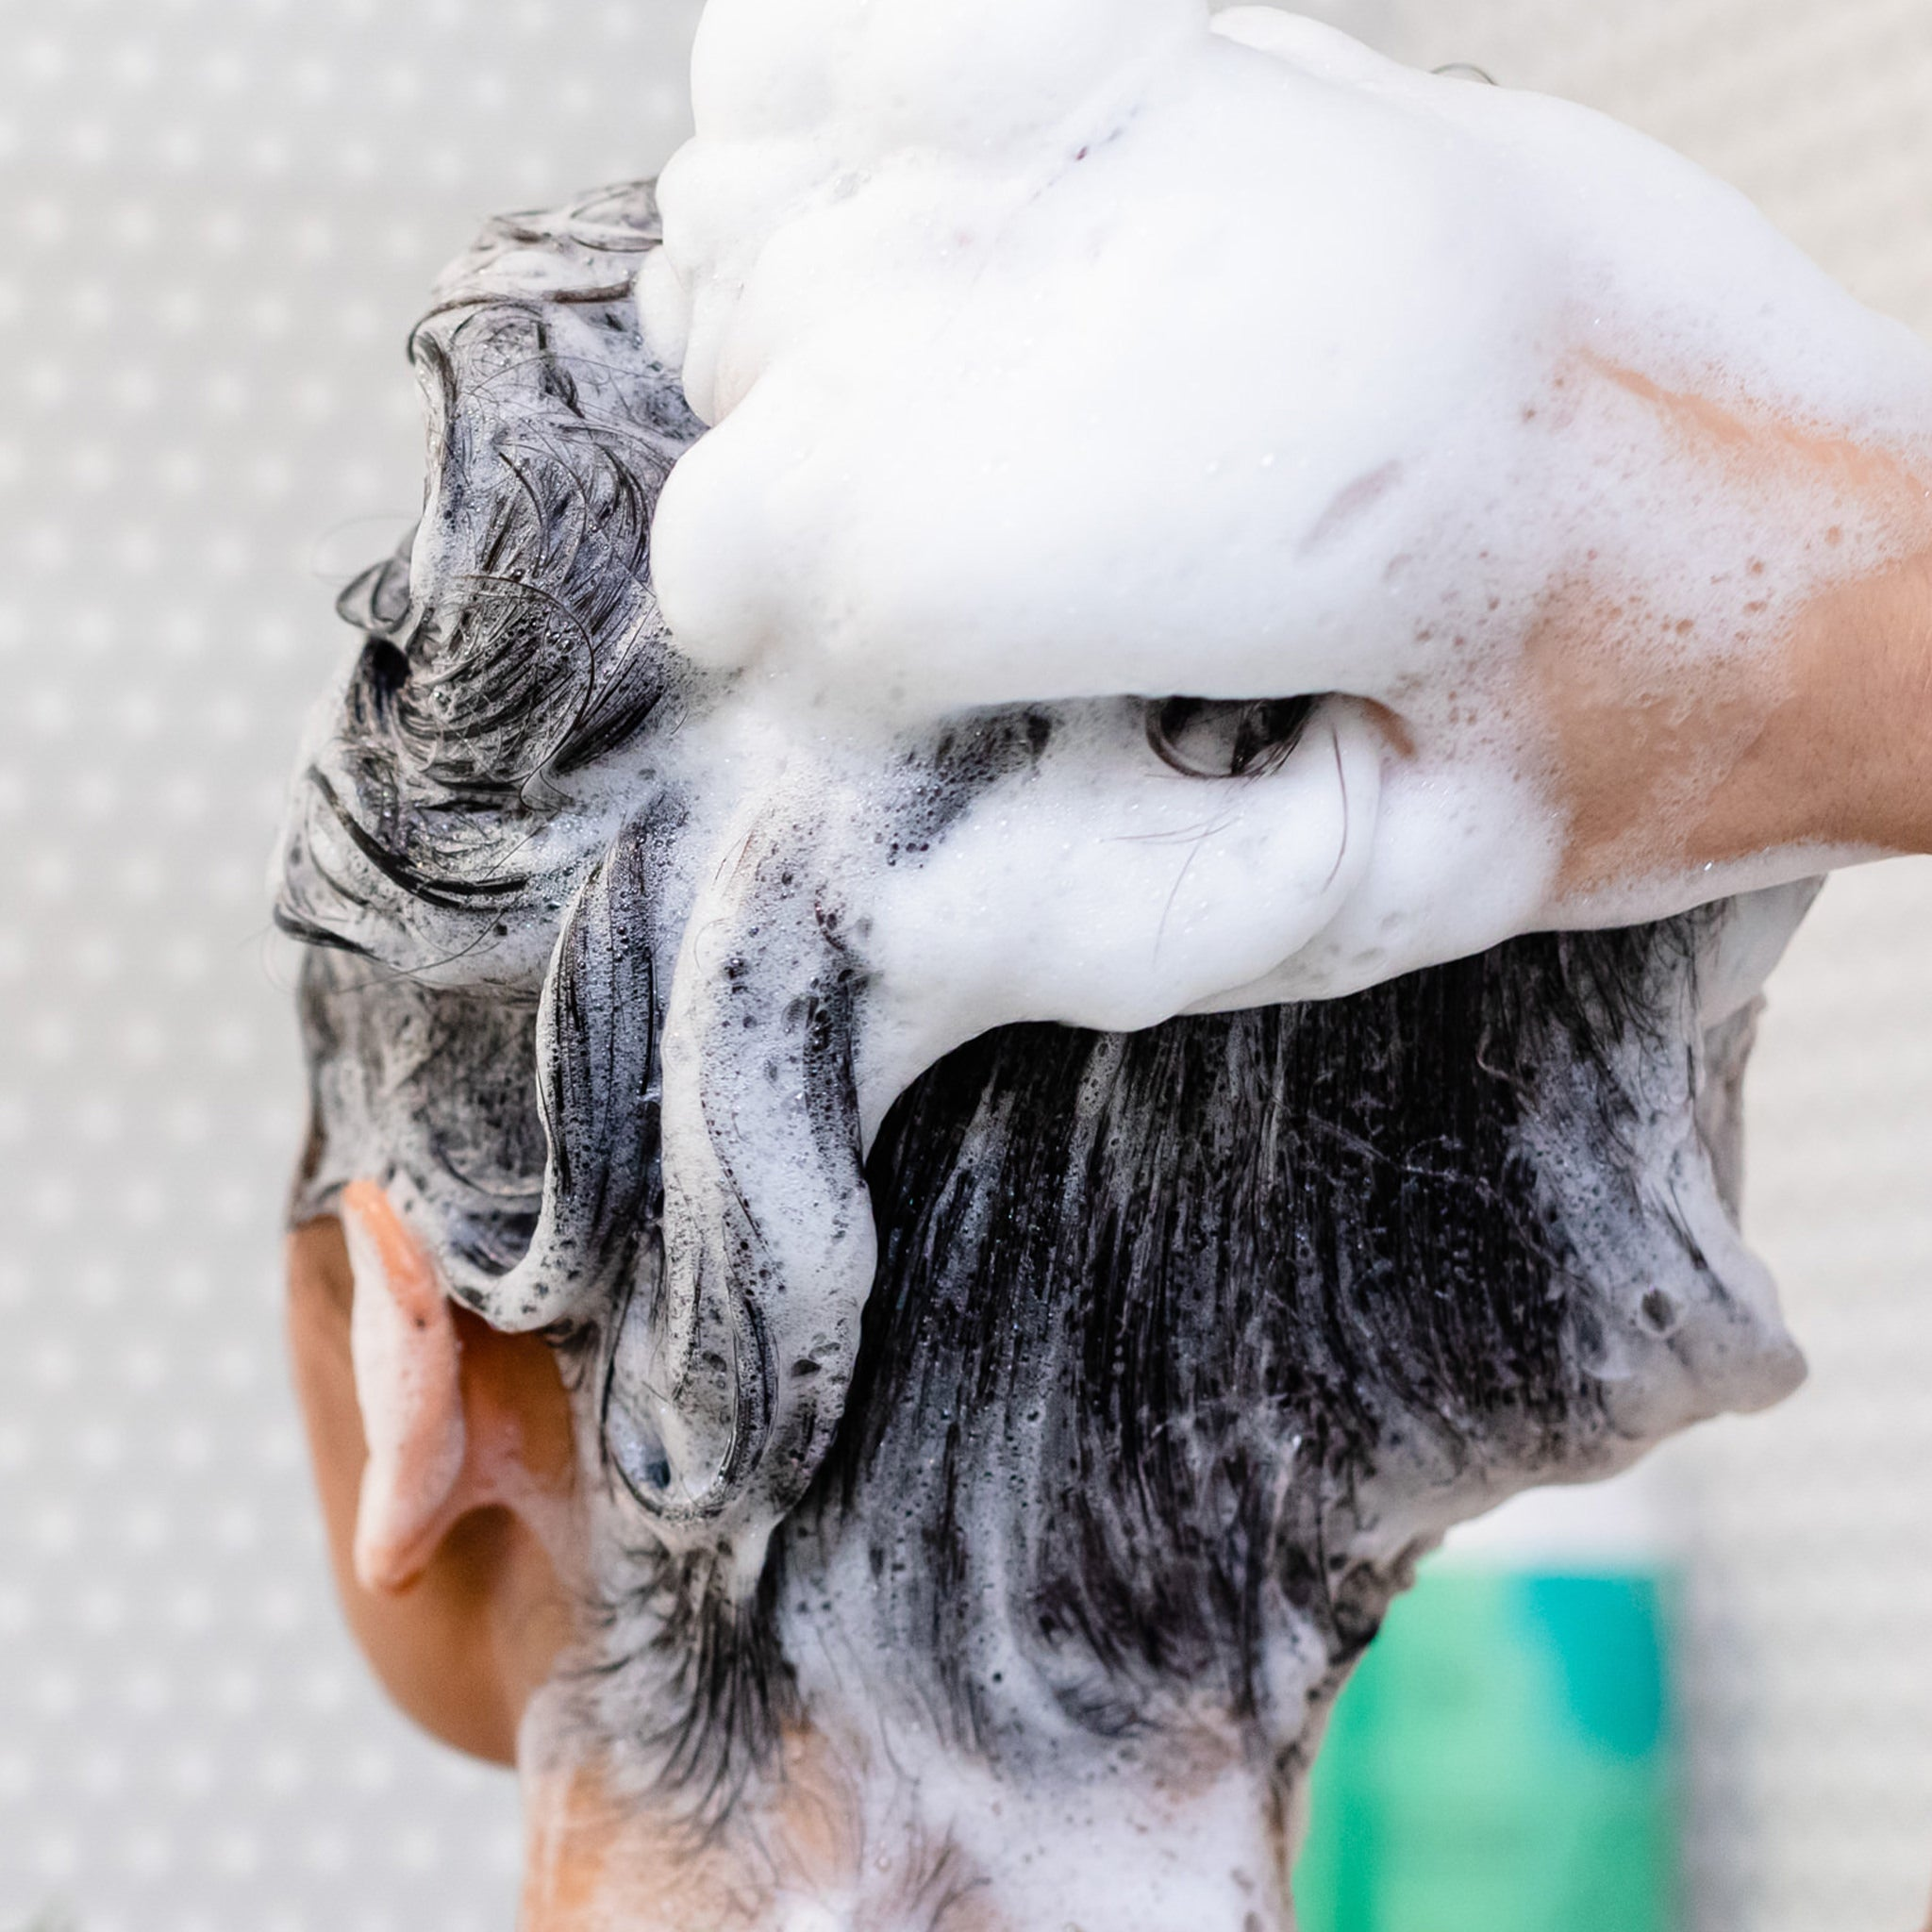 Image of hair lathering with natural shampoo.